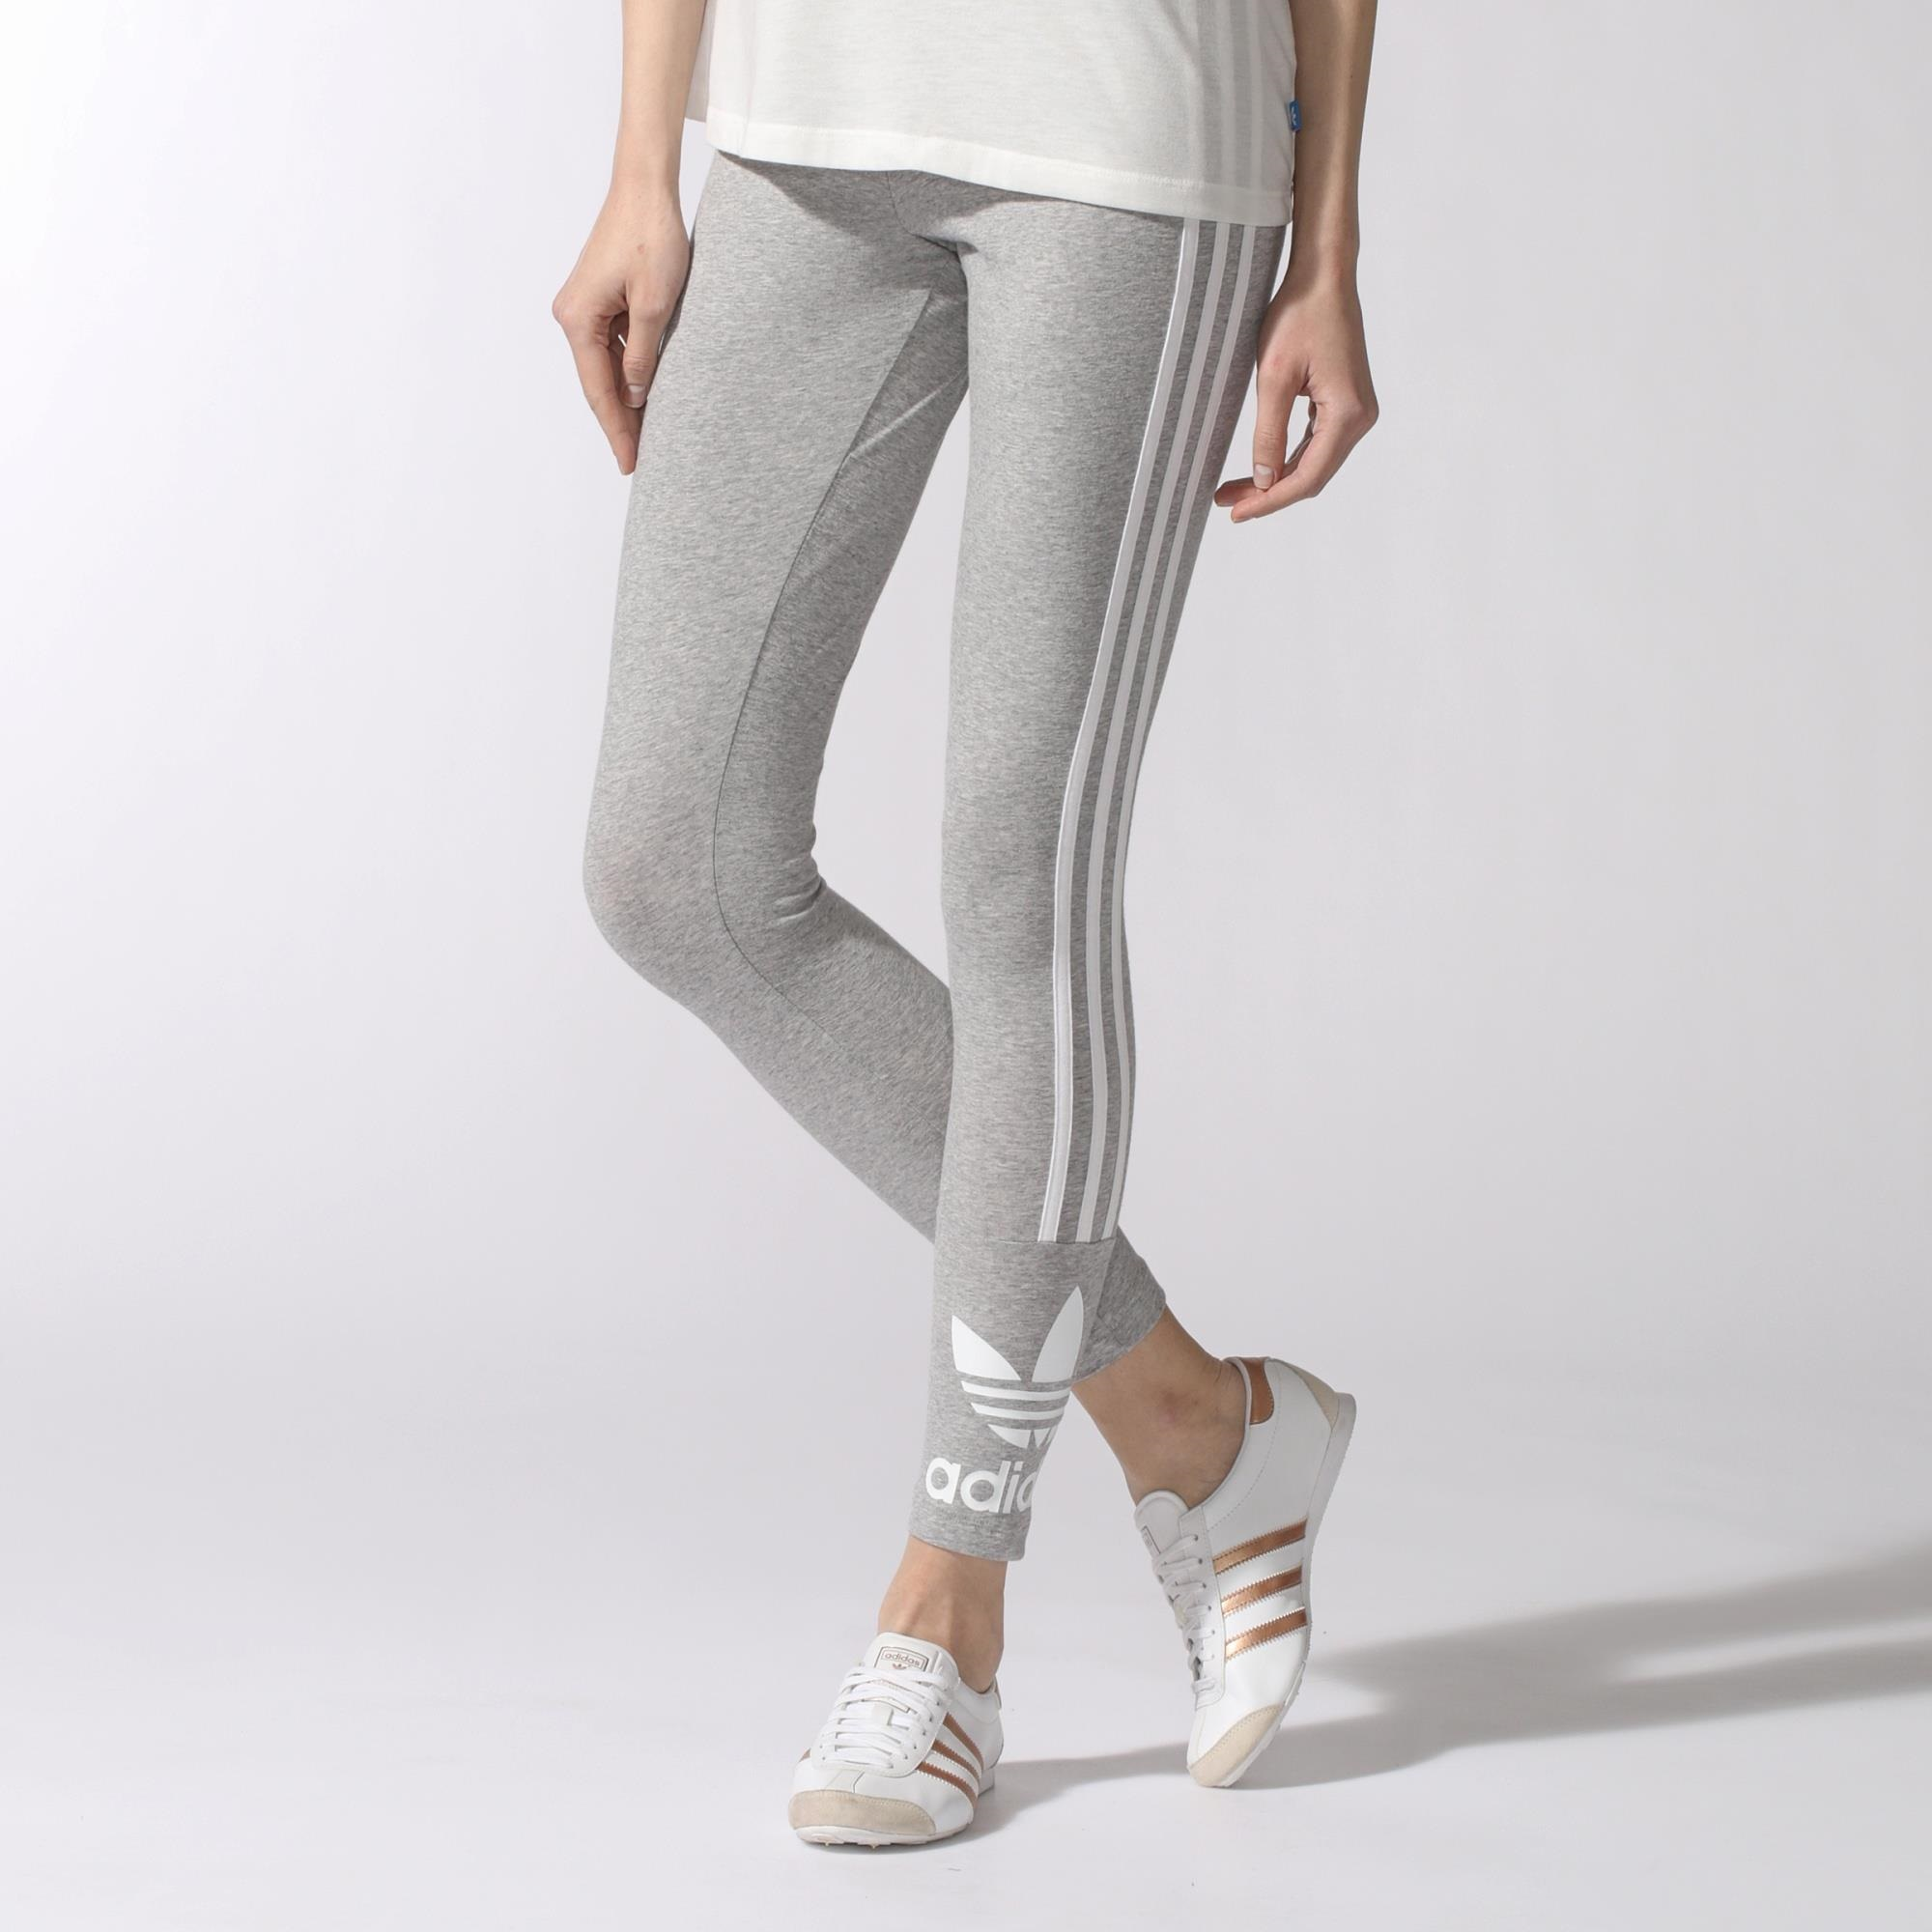 Stripes Leggings Women's GreyCanada 3 Adidas 4ScRq3LA5j